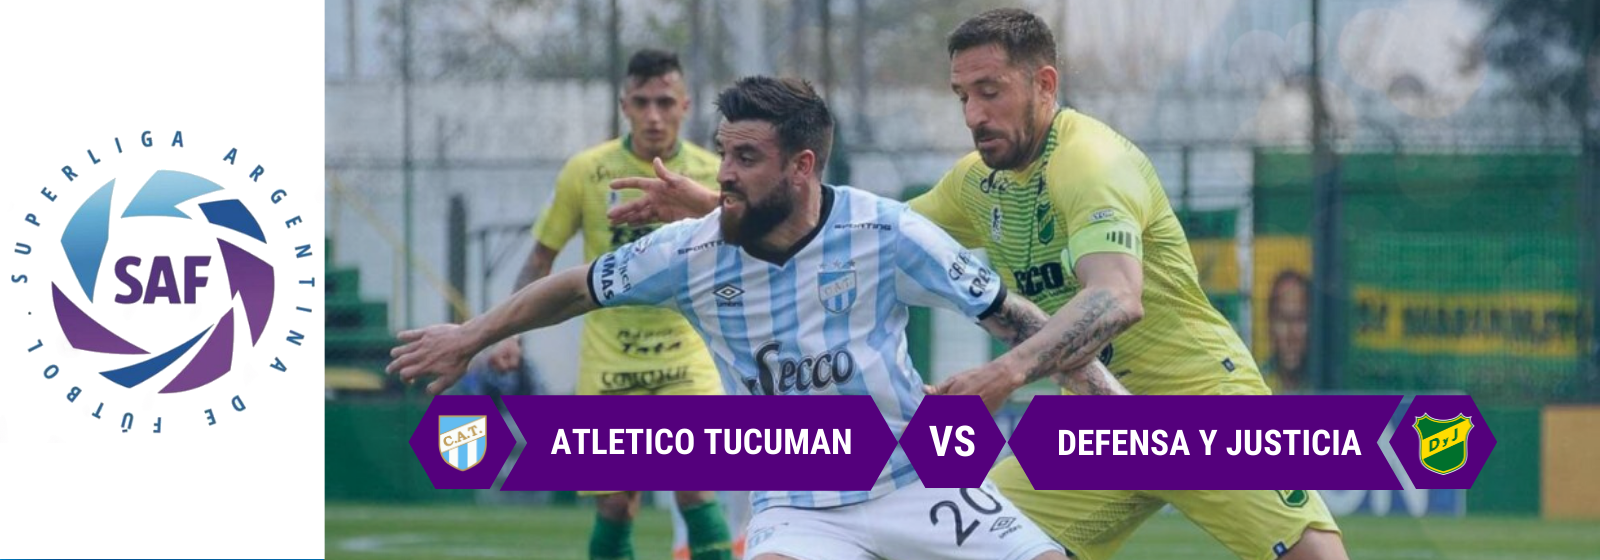 Asianconnect: Atletico Tucuman vs Defensa y Justicia Odds for February 01, 2020